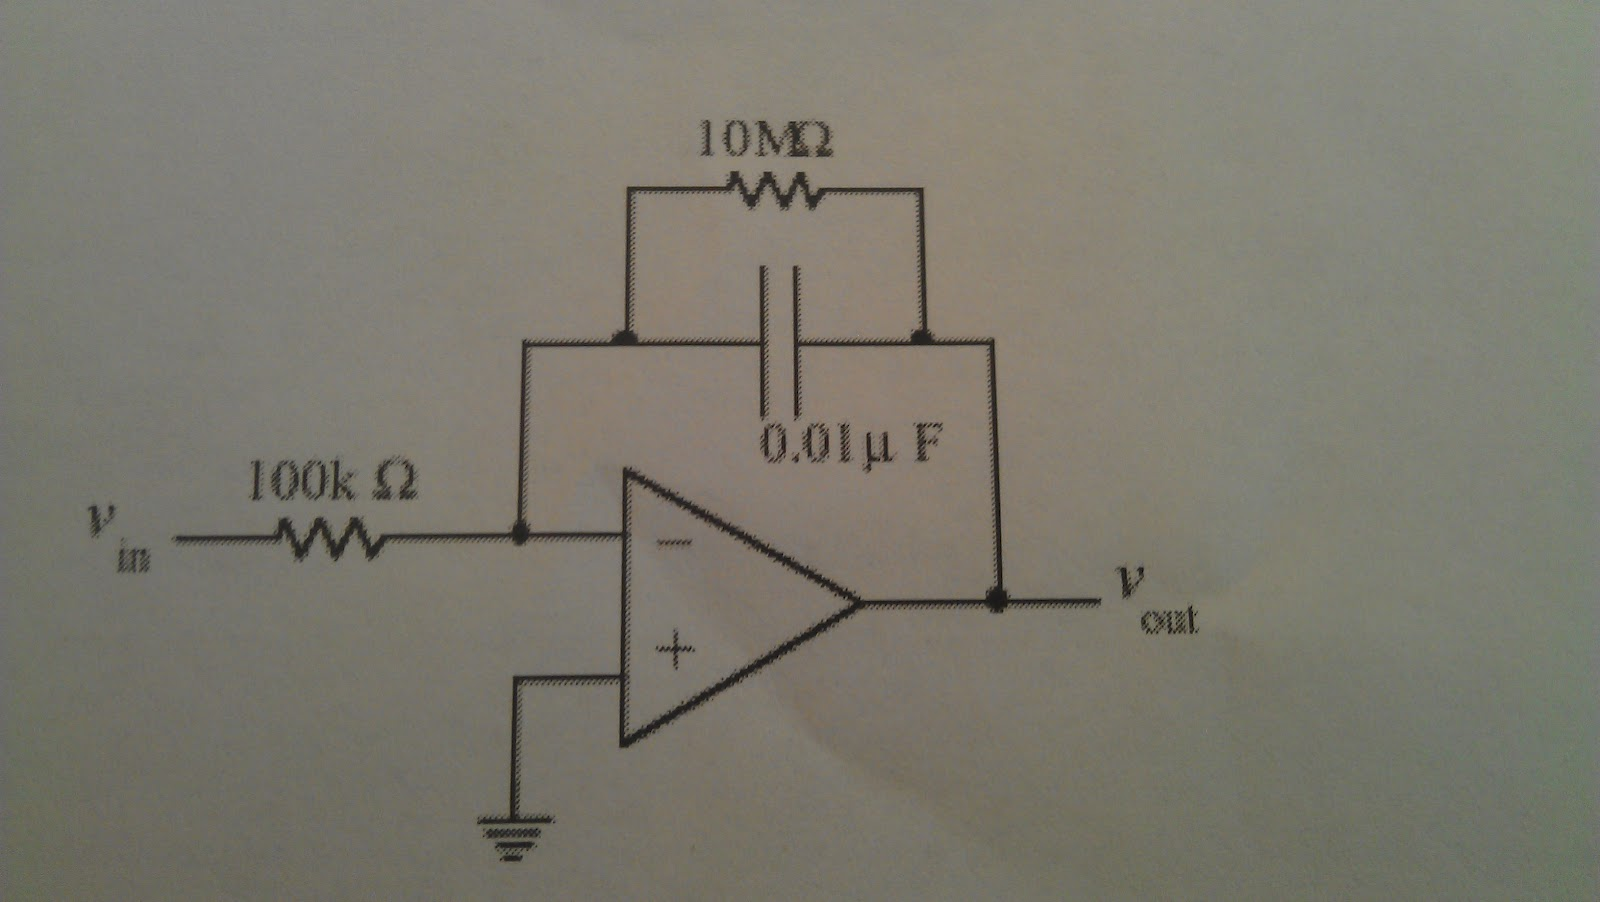 Opamp Lm324 And The Ideal Opamp Opamp Ideal Circuit Of An Op